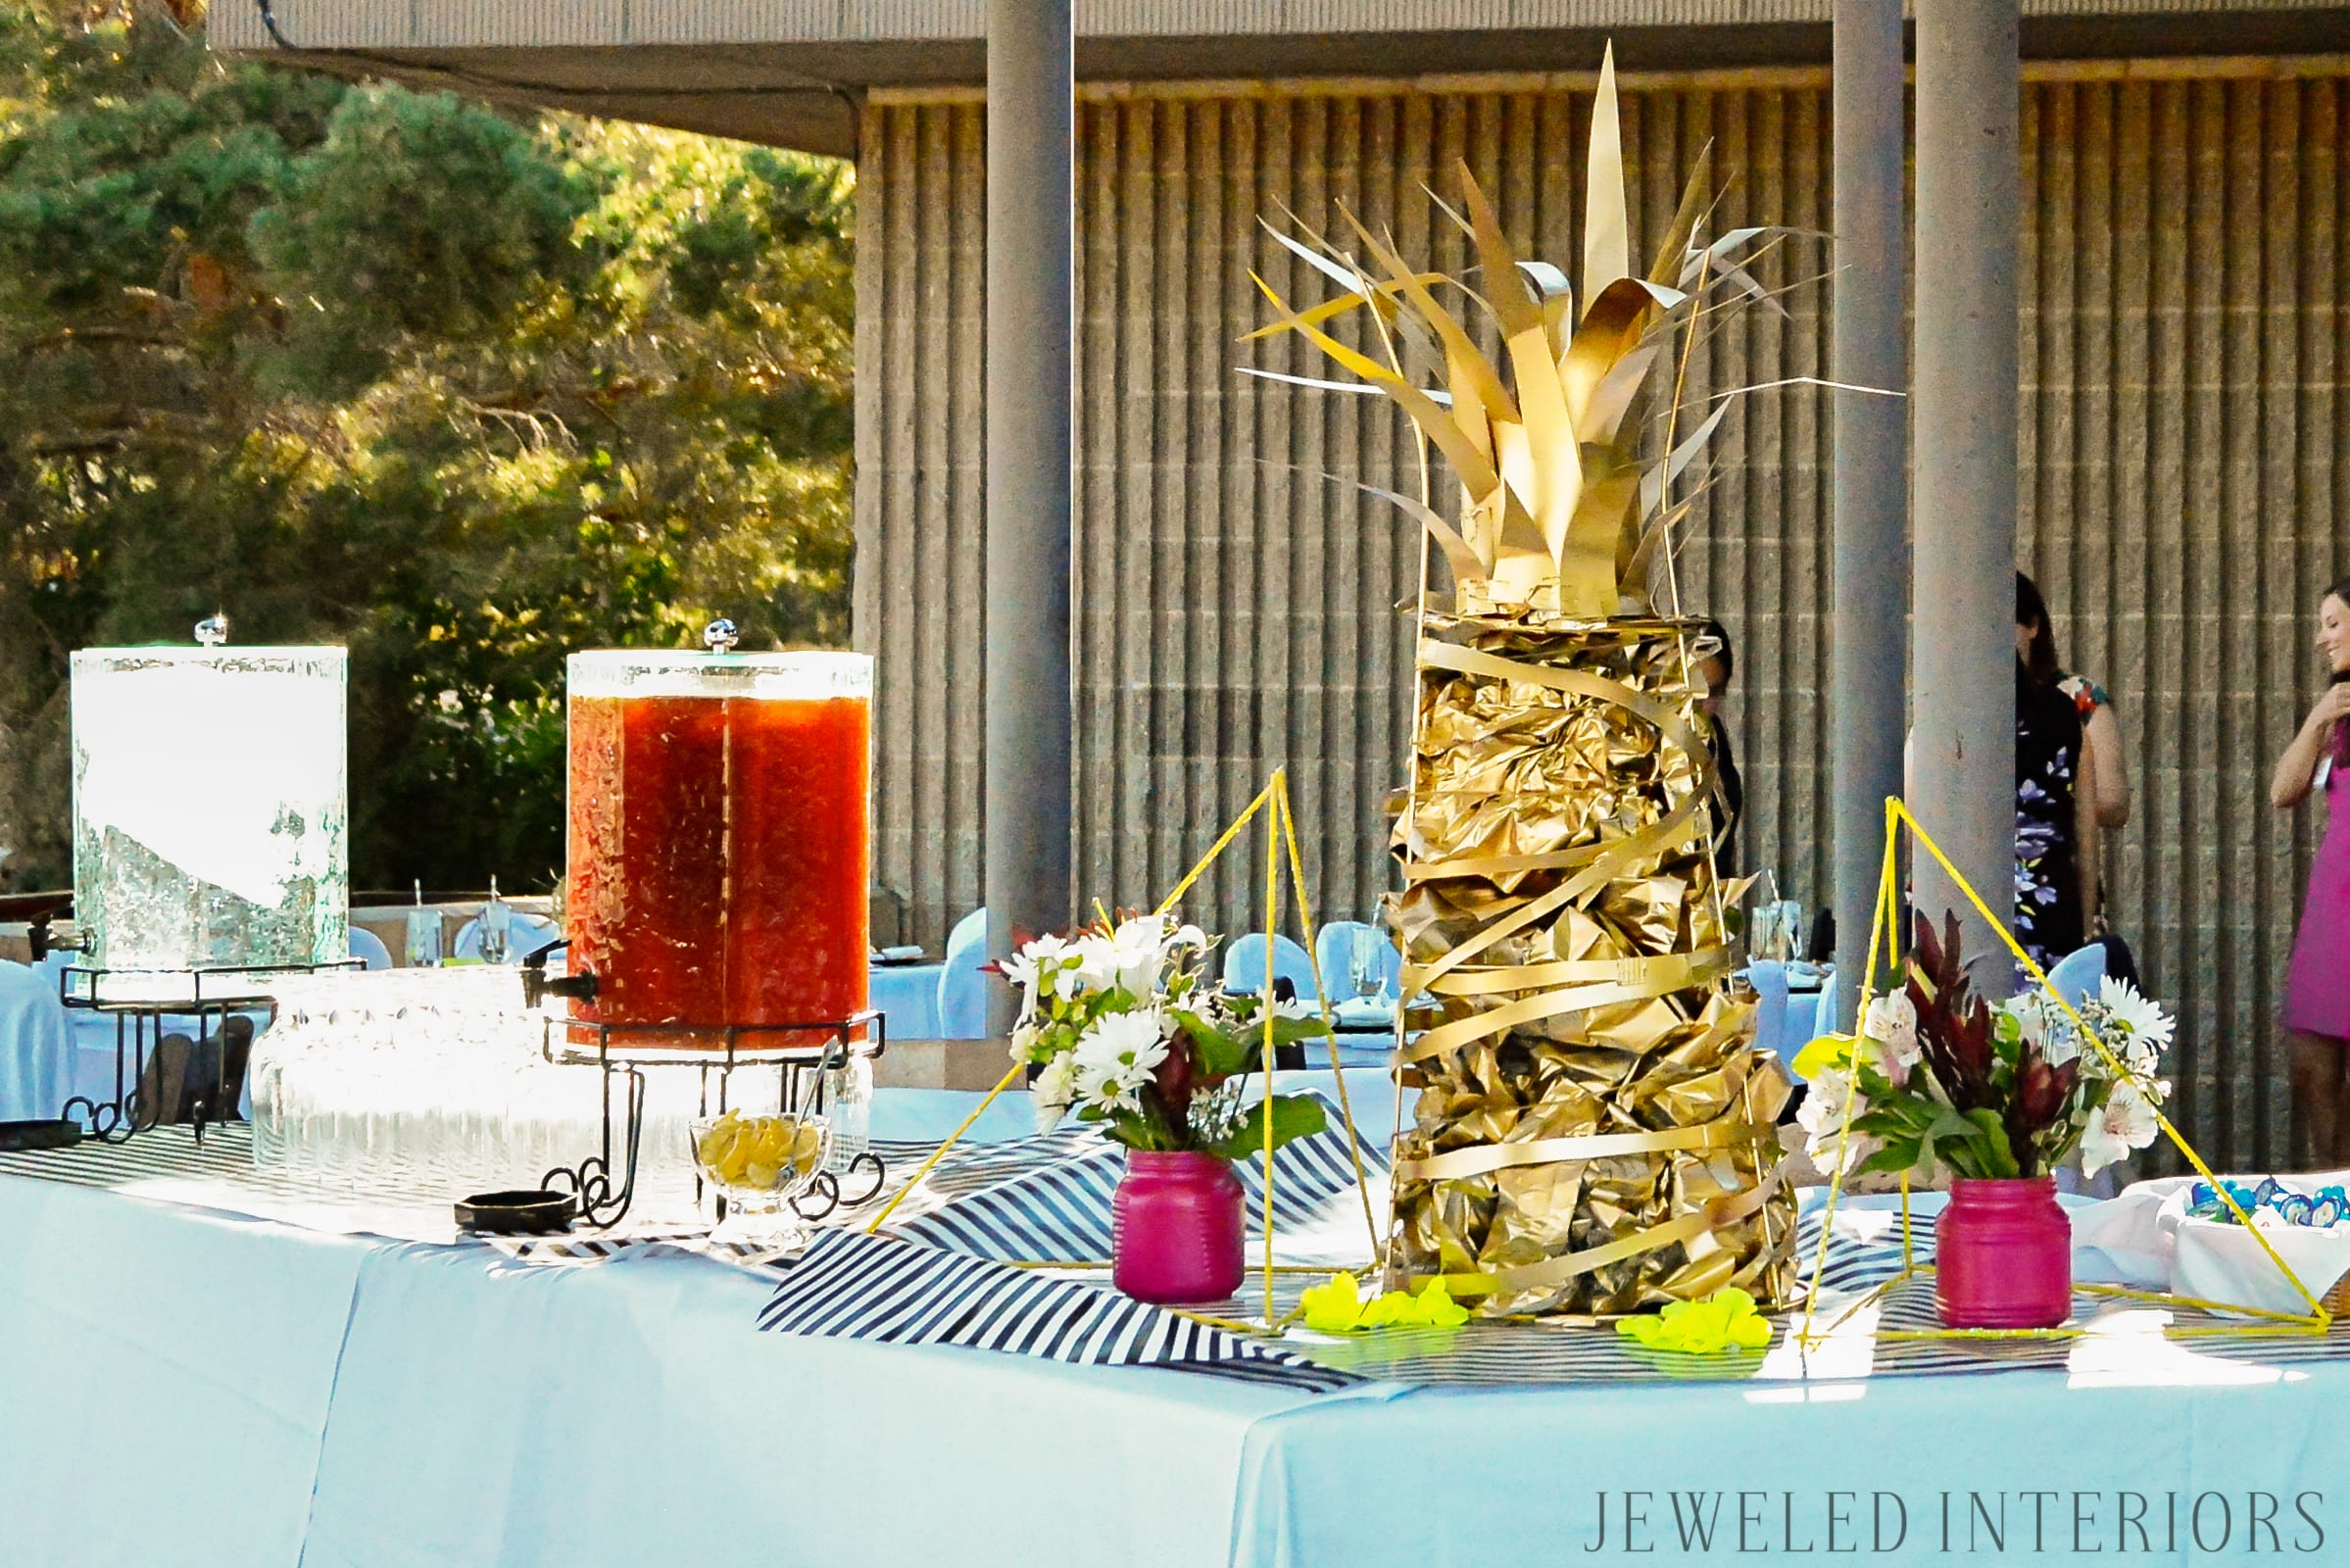 5 steps to a beautiful buffet table|| Jeweledinteriors.com, gold pineapple, Kate spade, black, white, striped, Hawaiian, pineapple, florescent, party, event